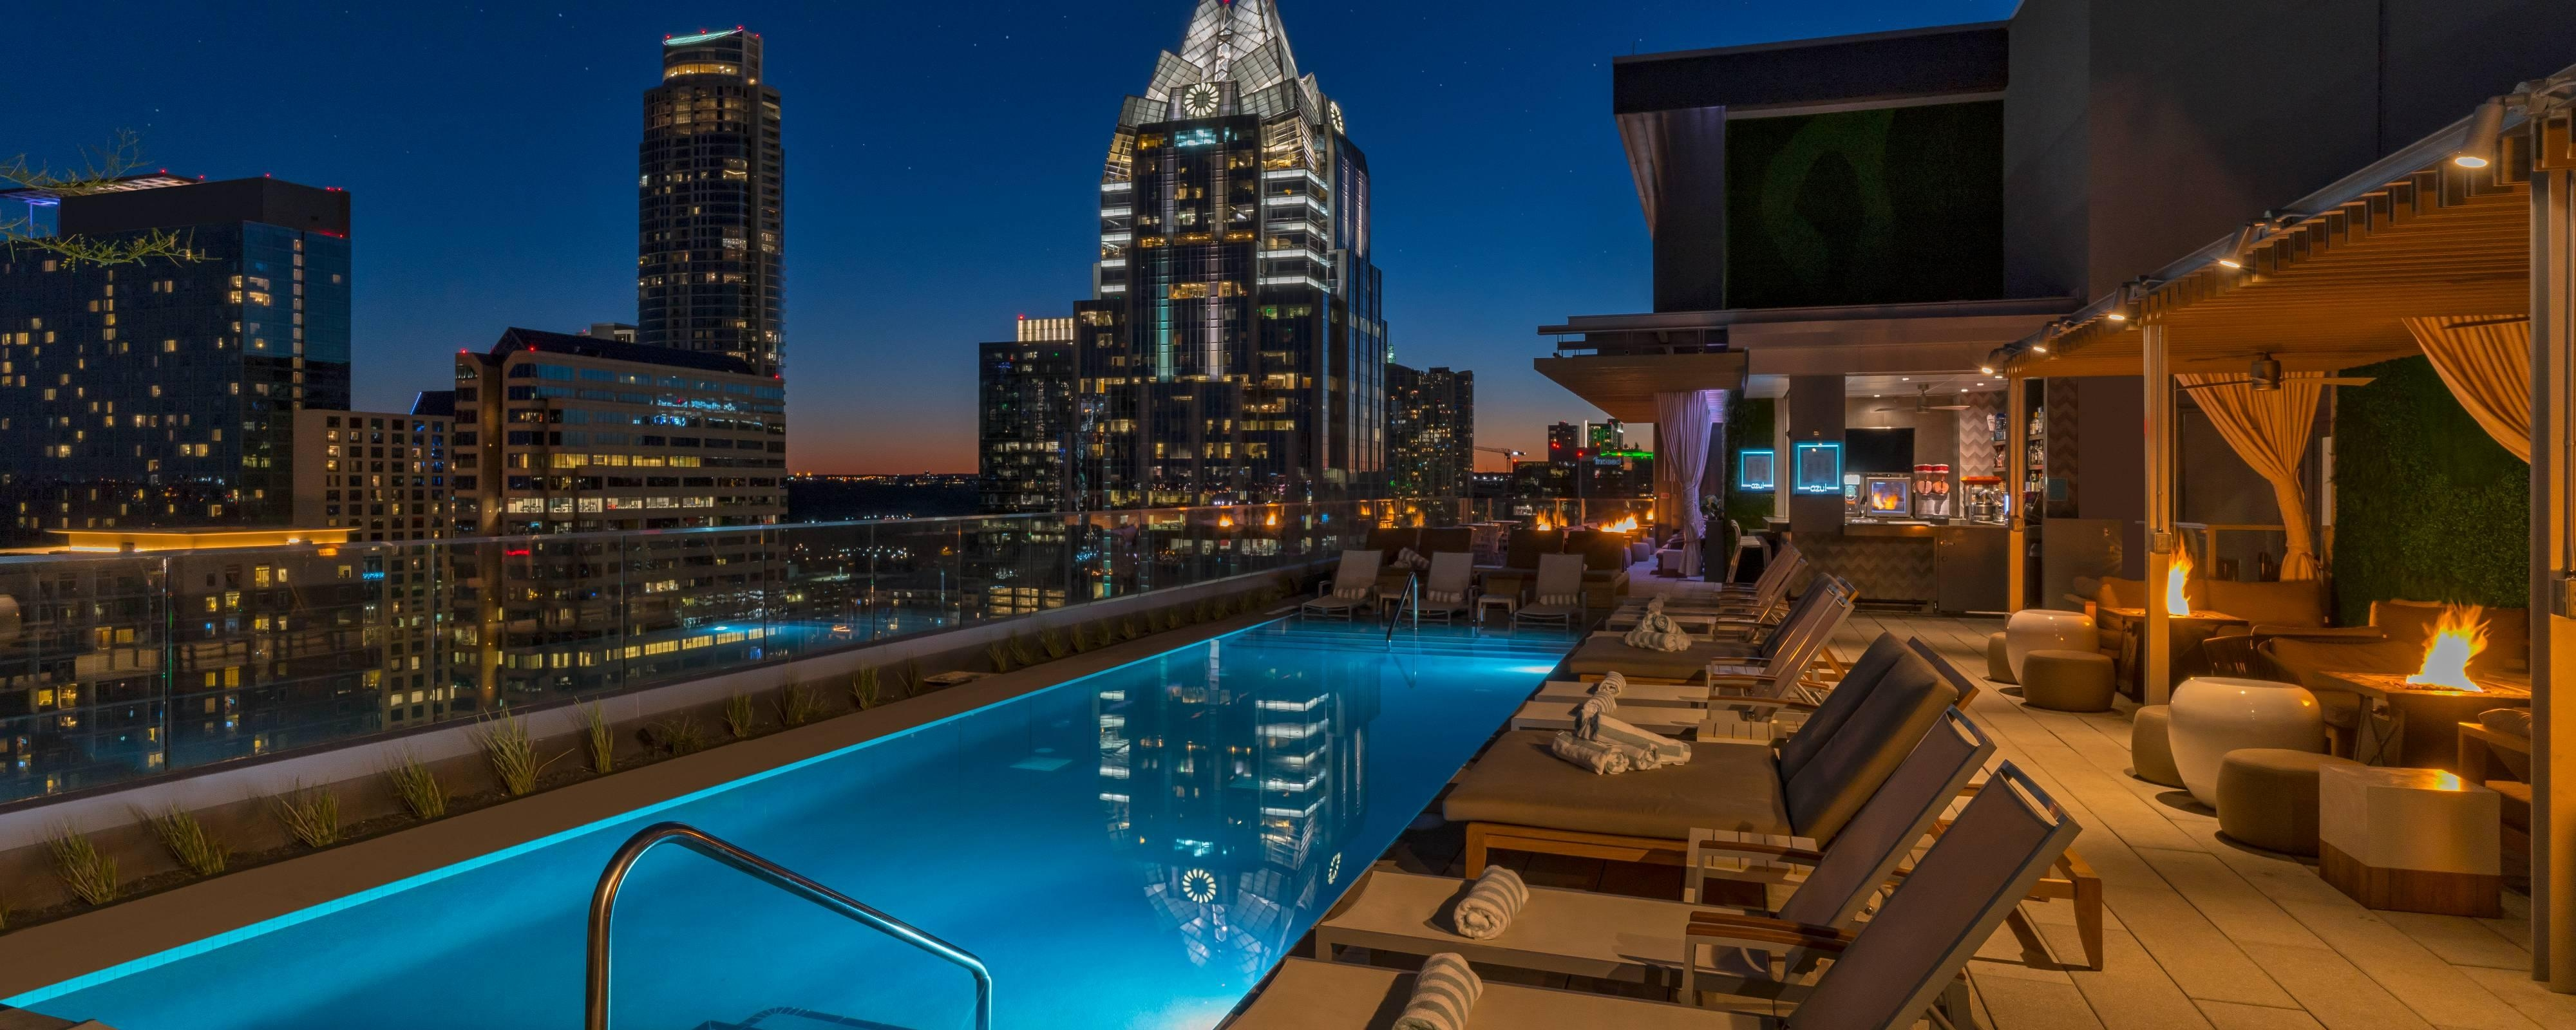 Azul Rooftop Lounge Beds